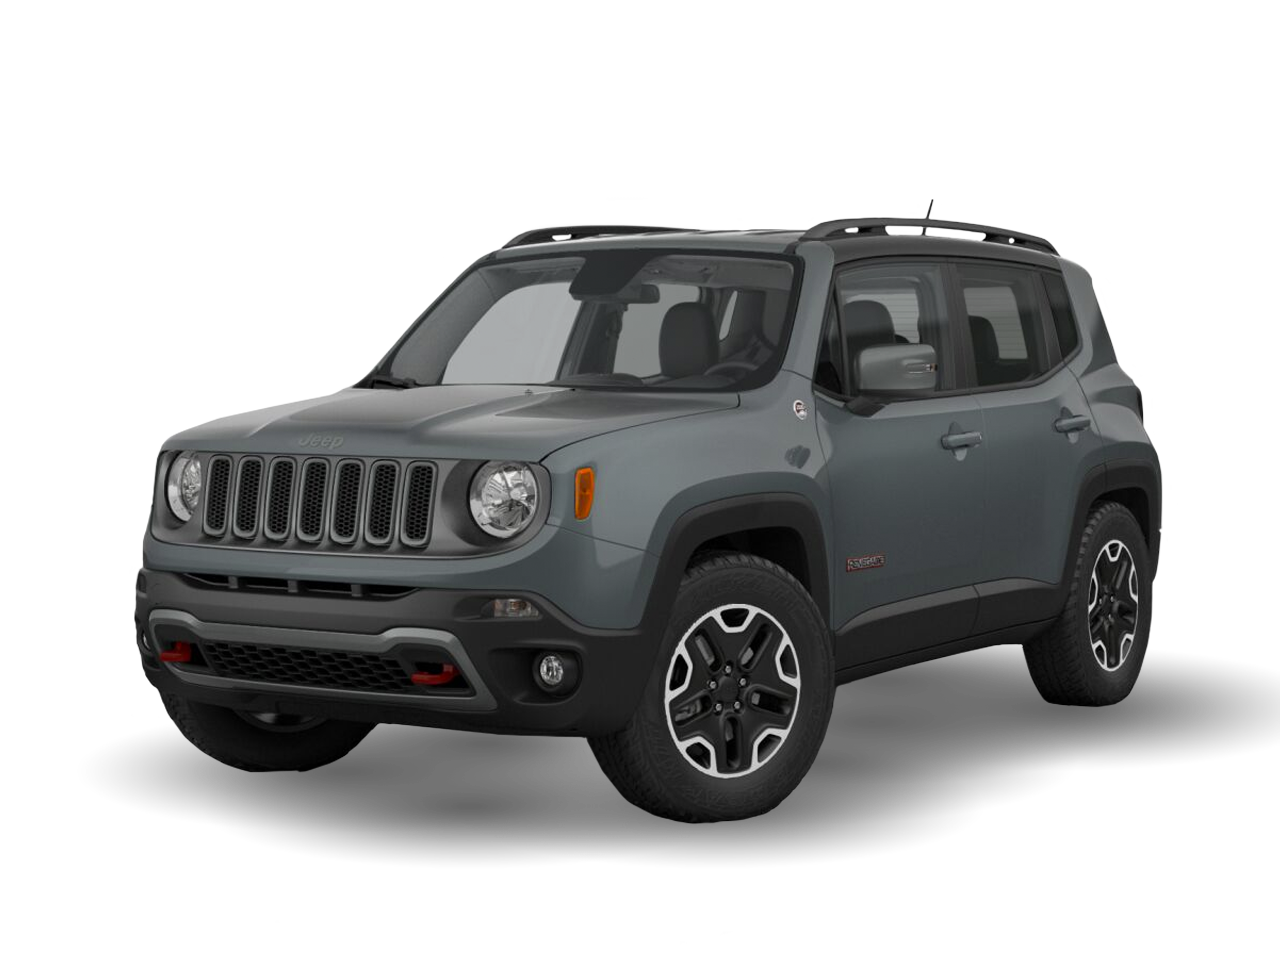 Carl Burger Dodge San Diego >> 2018 Jeep Renegade In Depth Model Overview 2018 Renegade Near Me